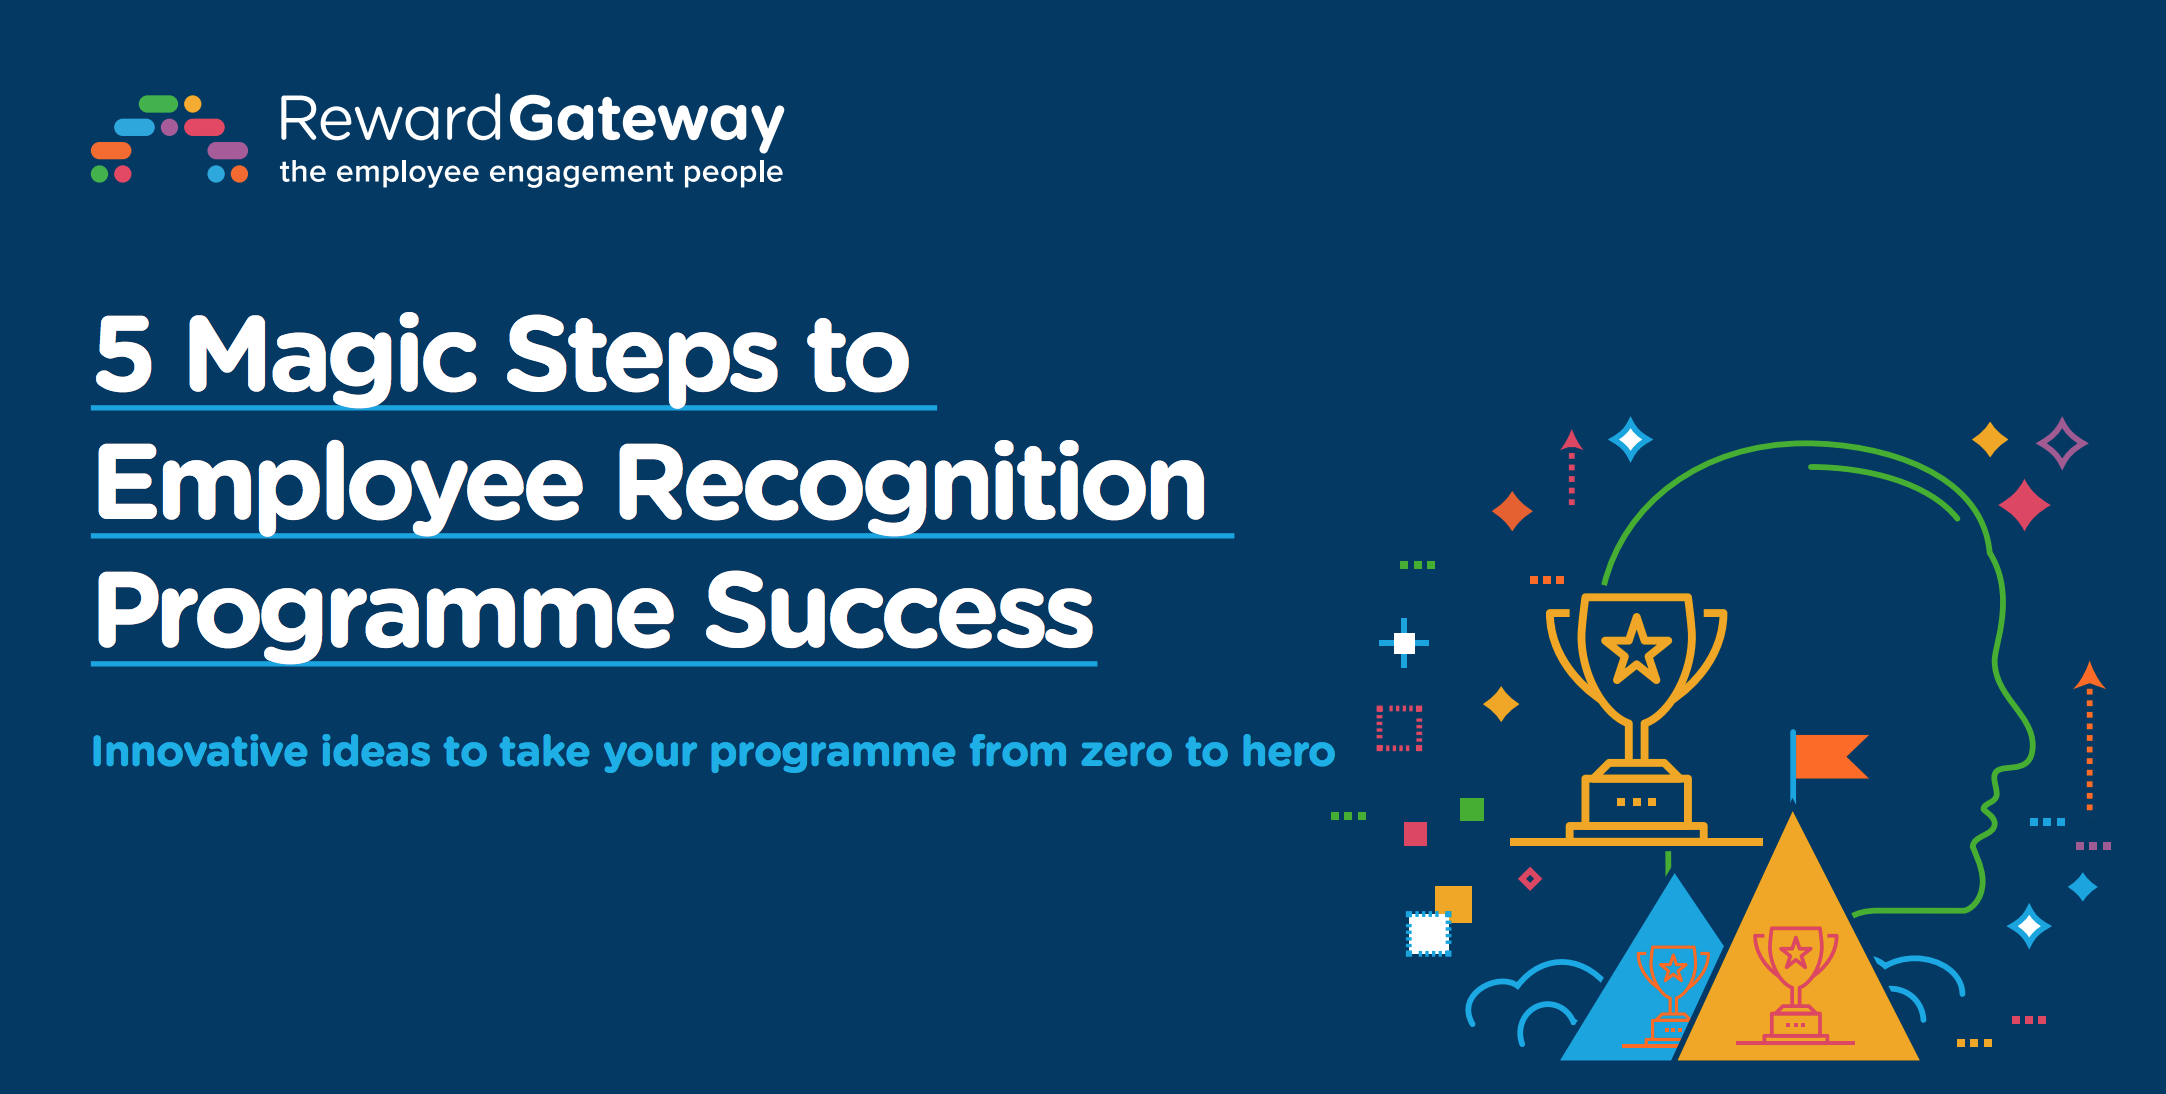 5 magic steps to employee recognition programme success